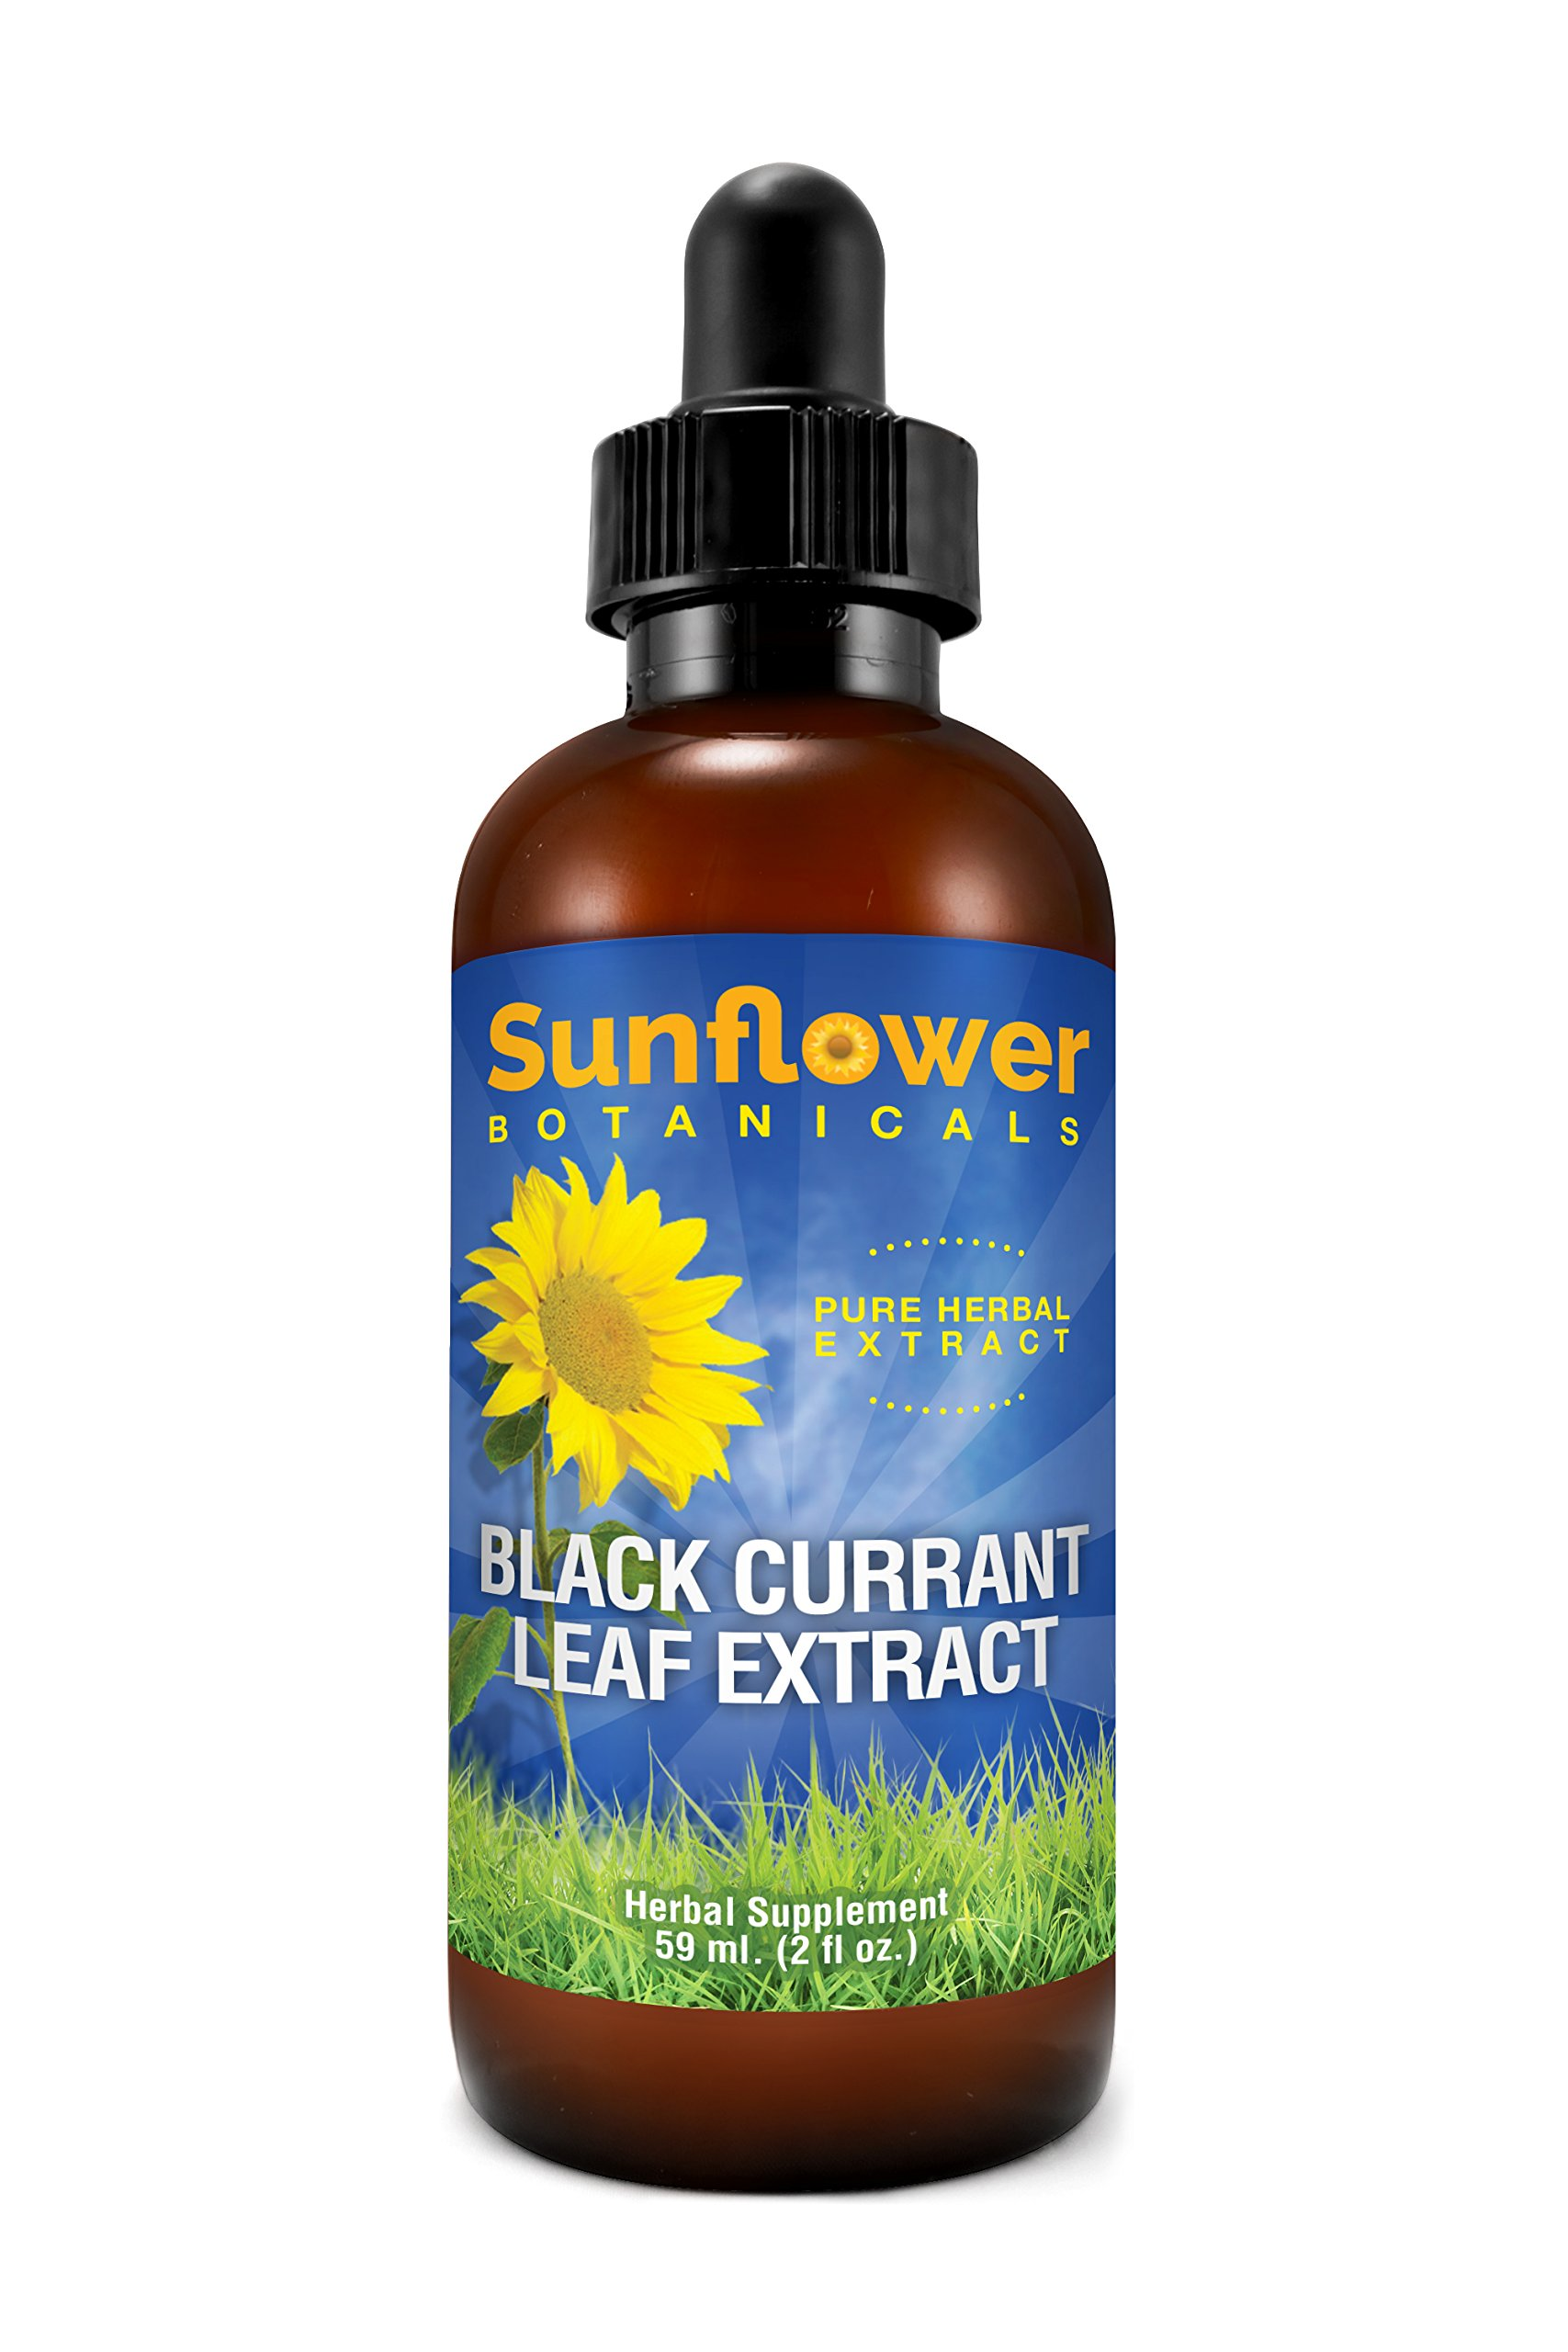 Black Currant Leaf Extract, All Natural, 2 Ounces, Dropper-Top Glass Bottle